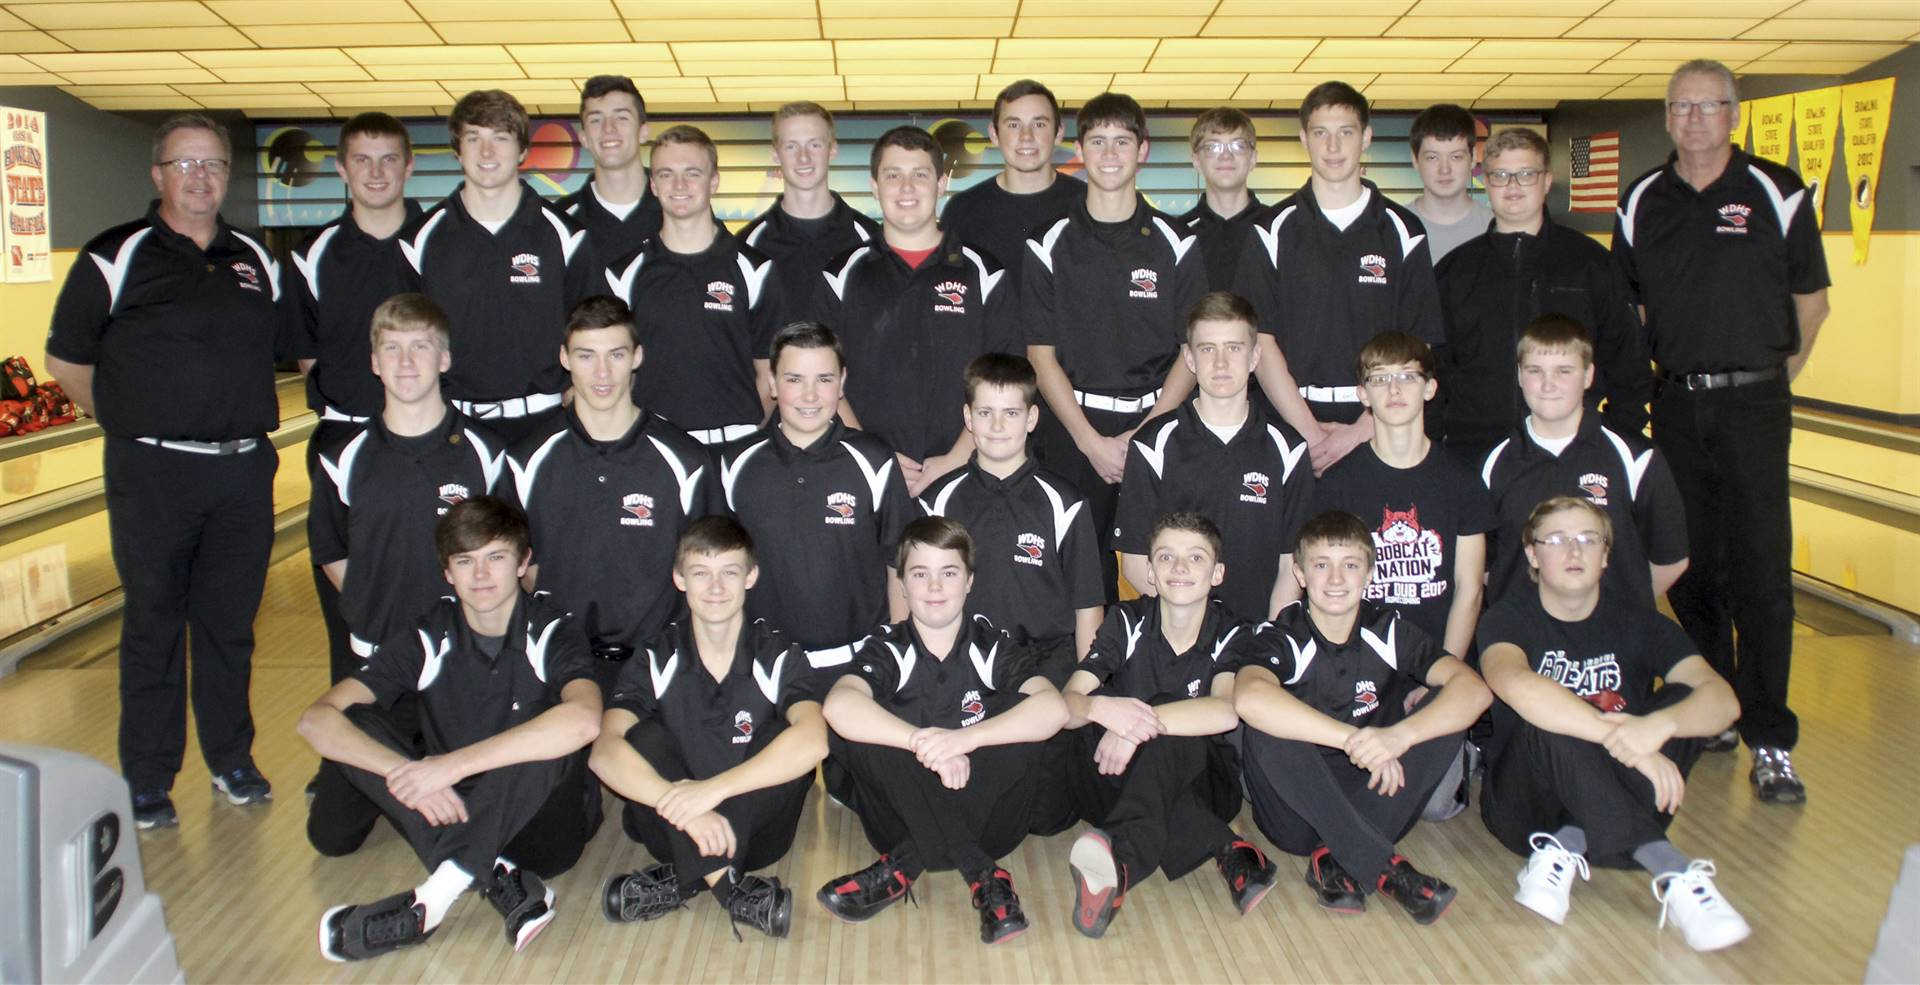 Boys Bowlers